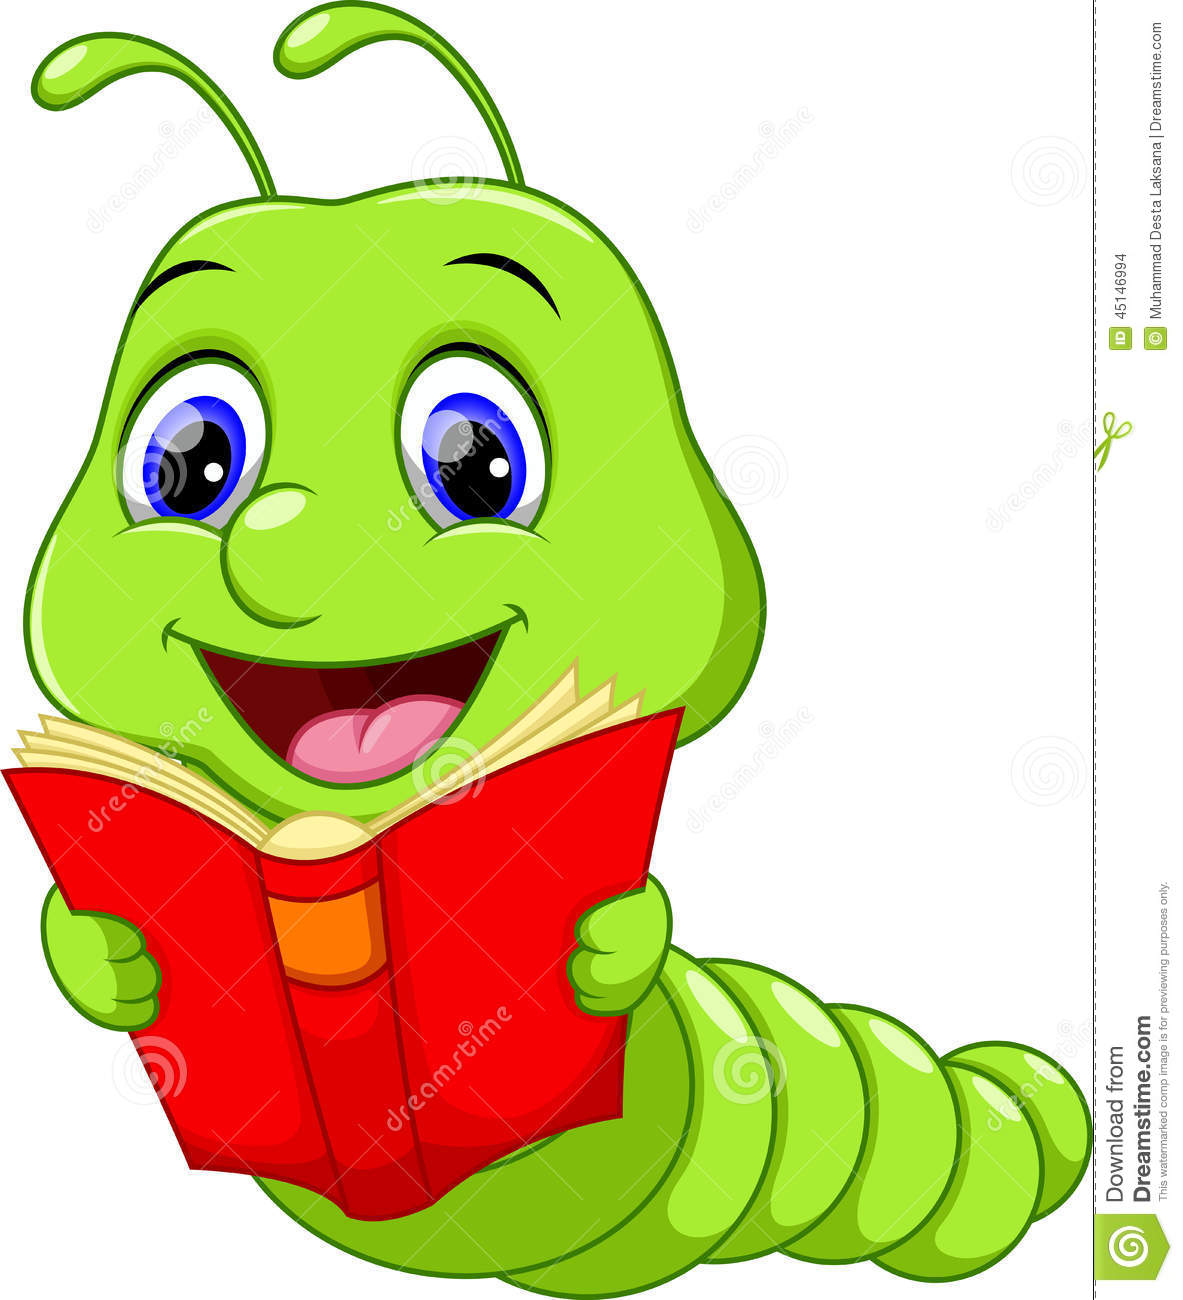 Animated Worm Clipart.